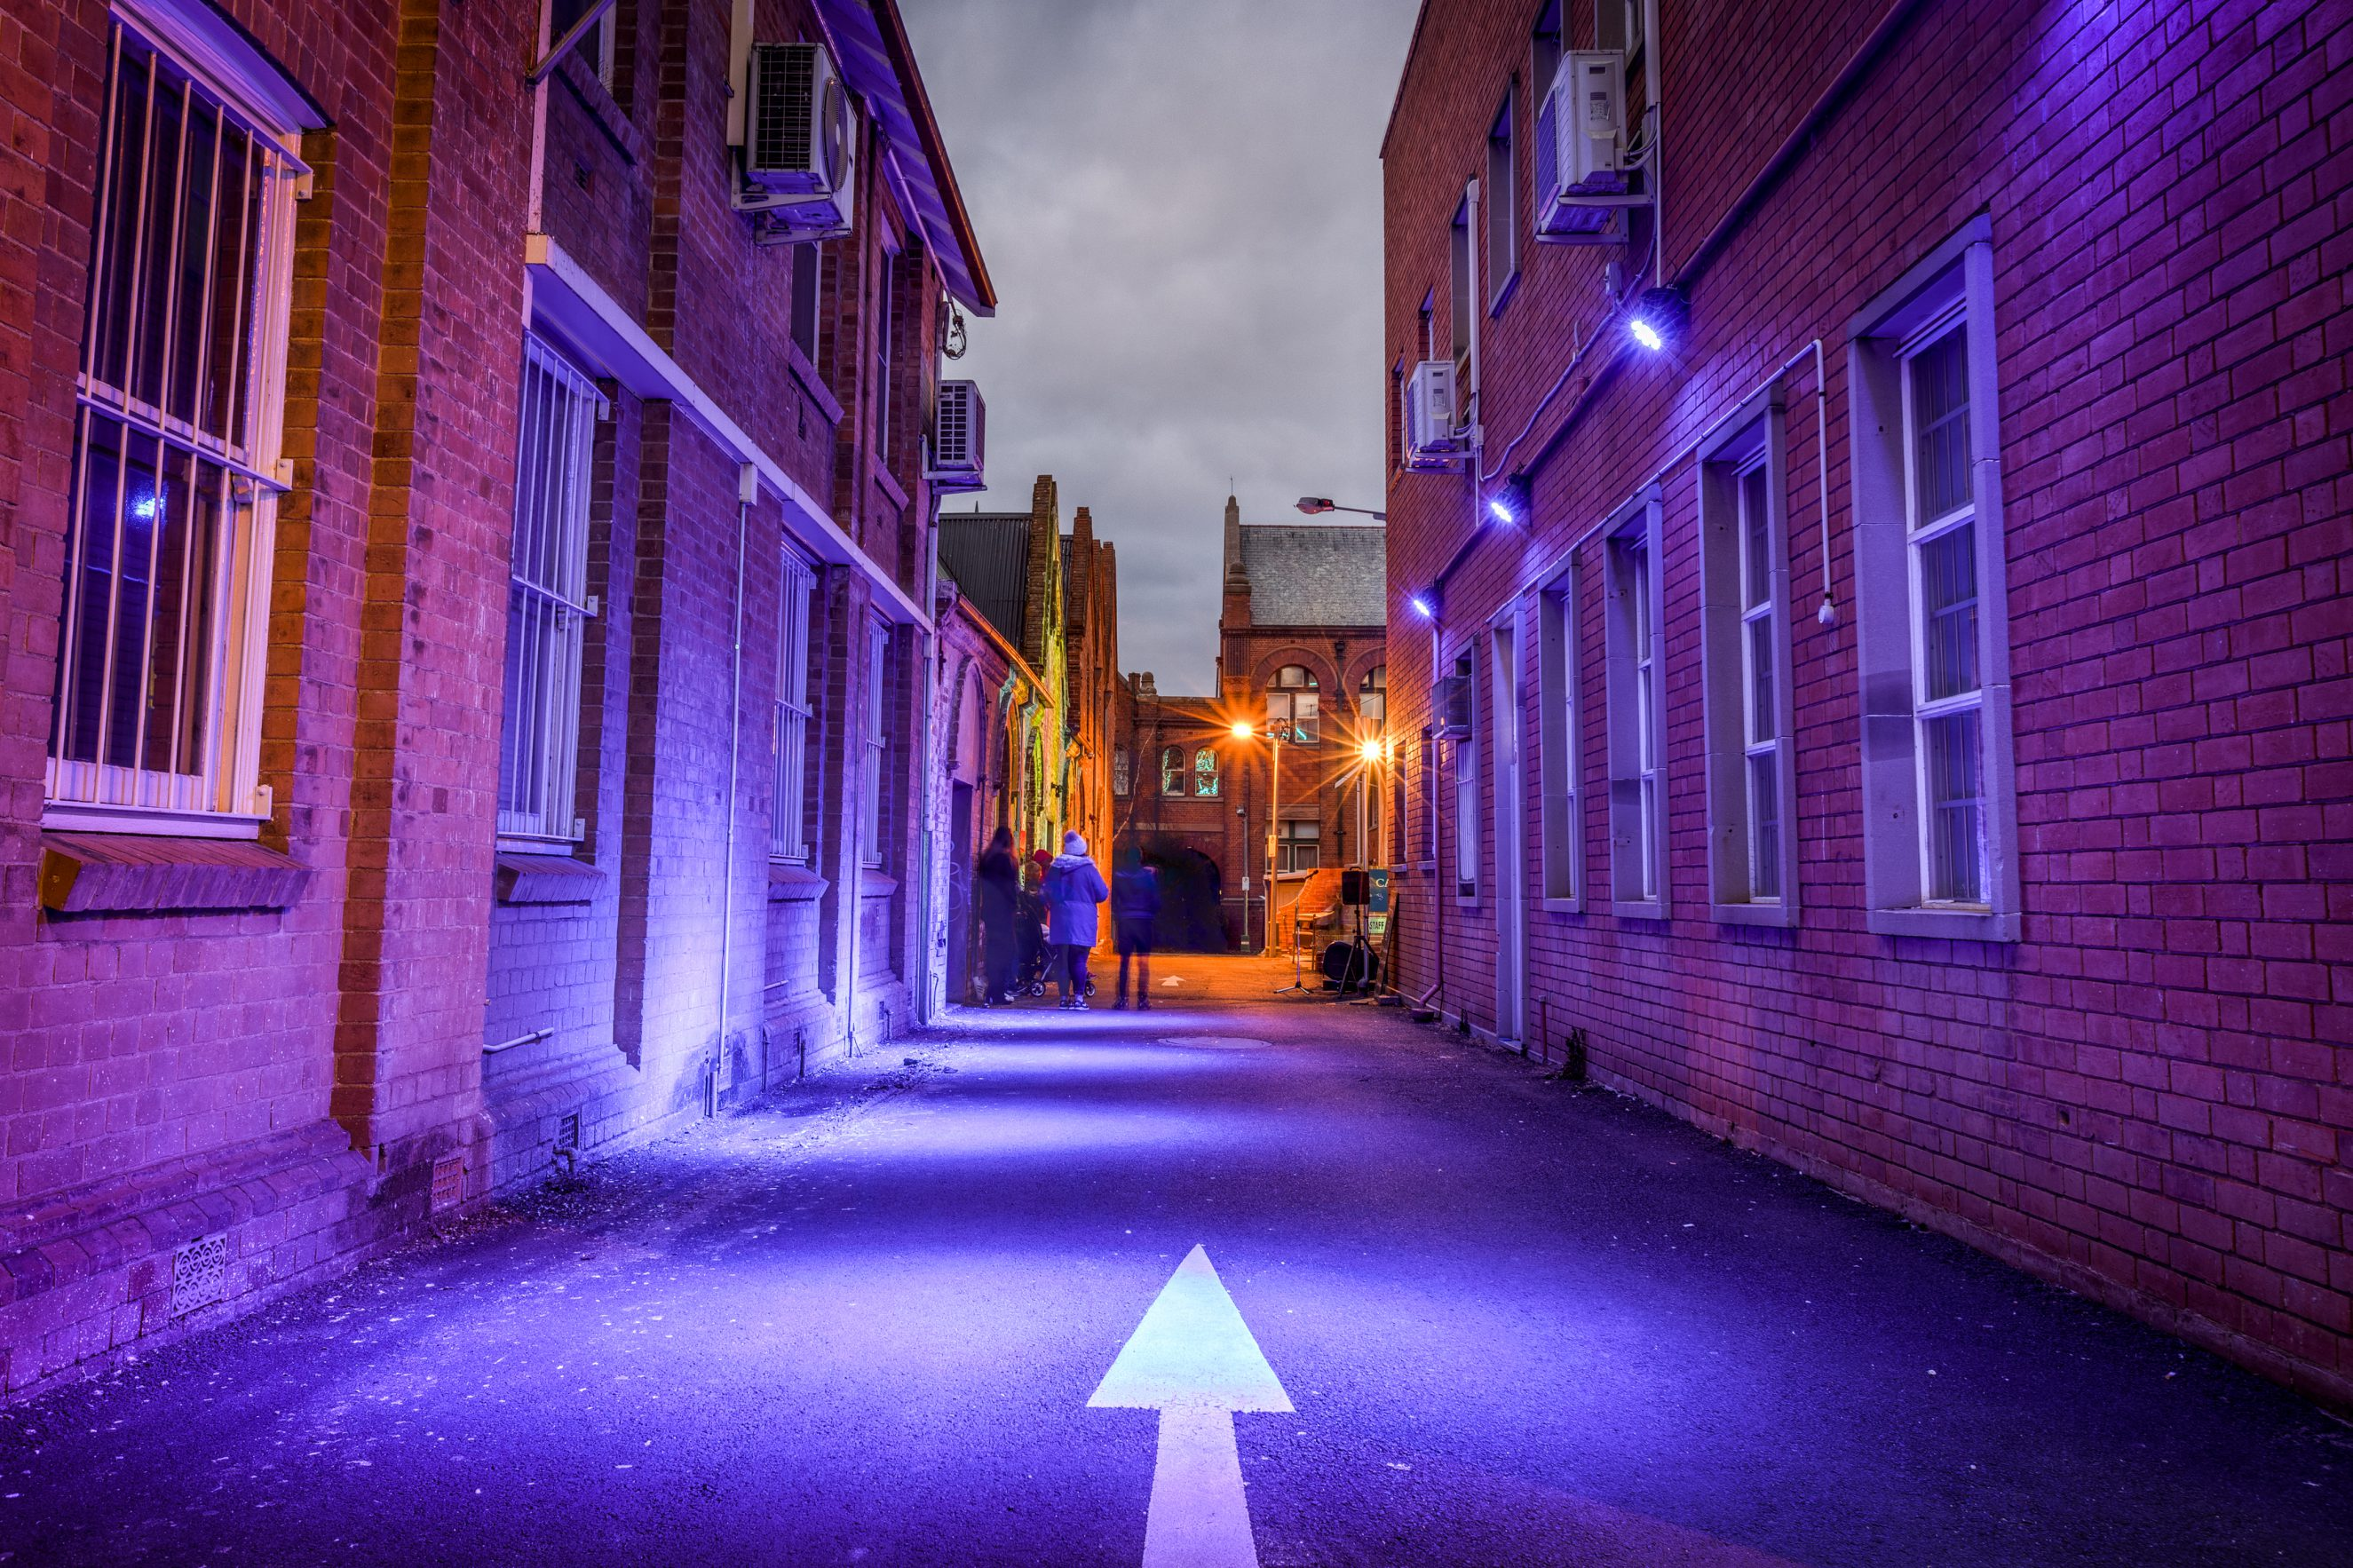 2016 – Illuminated buildings Ribbon Gang Lane looking towards TAFE building